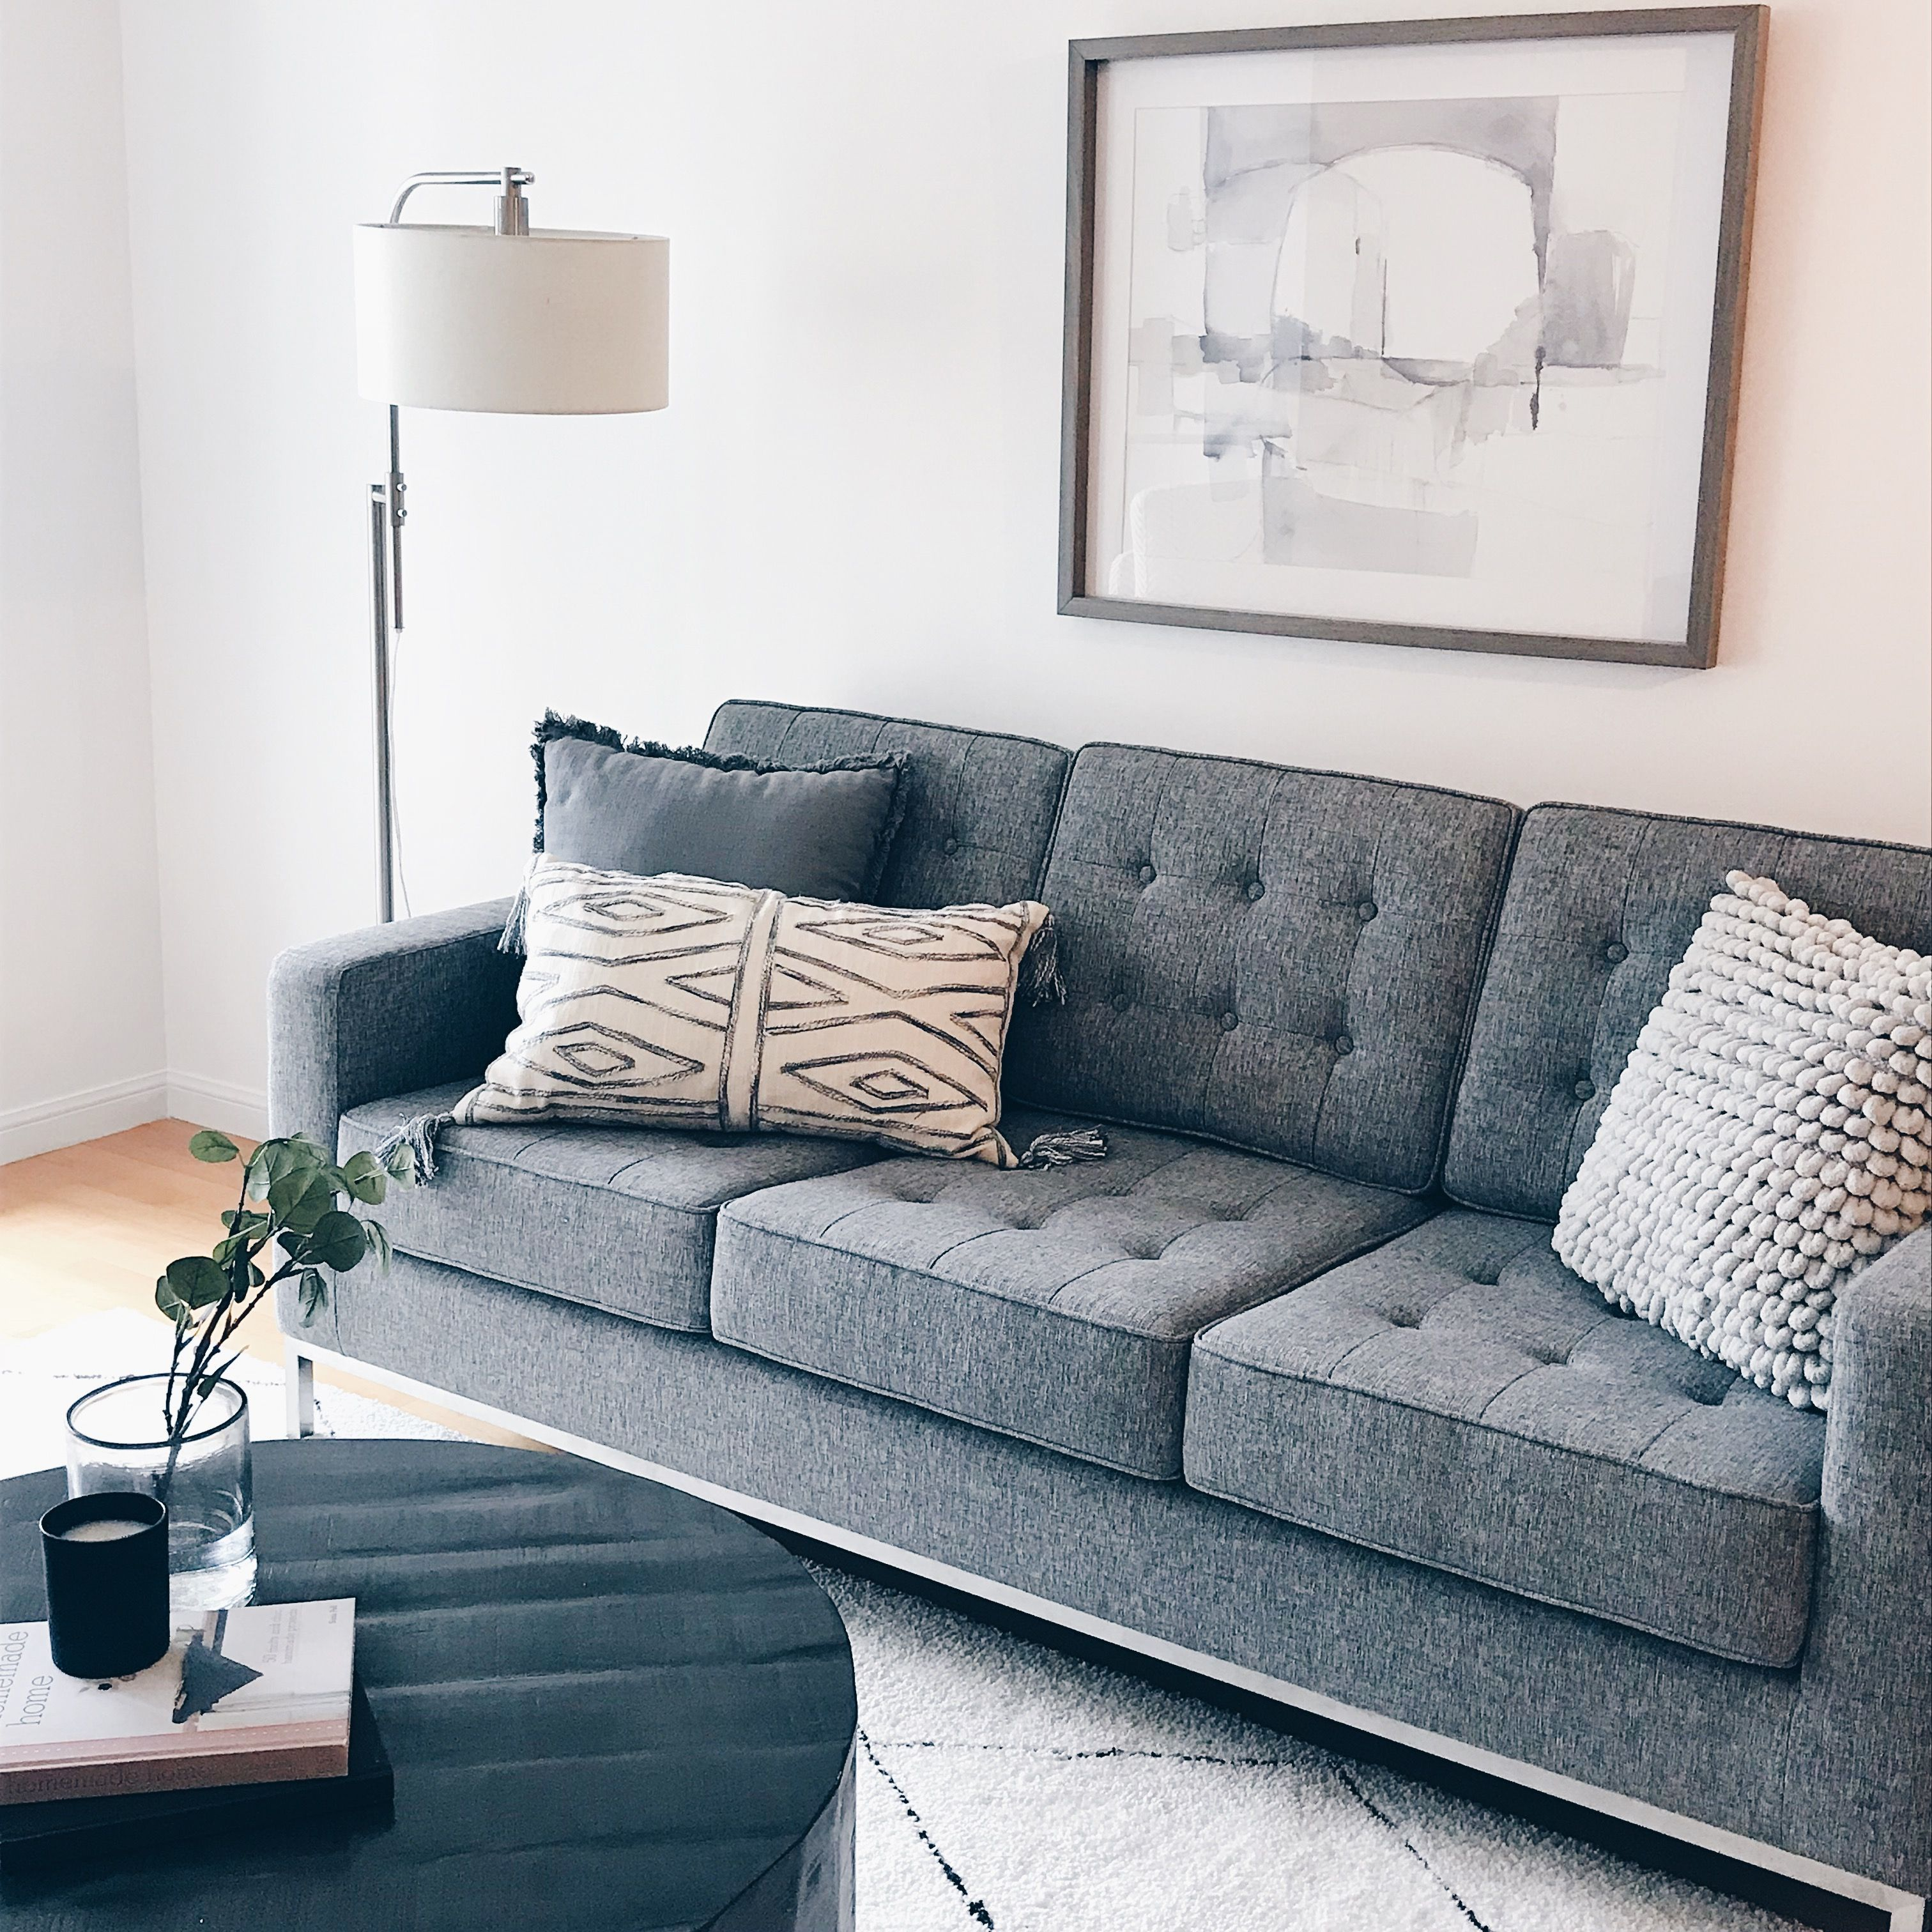 Gmk Home & Living Sofa Many Small Living Room Ideas Revolve Around Tricking The Eye